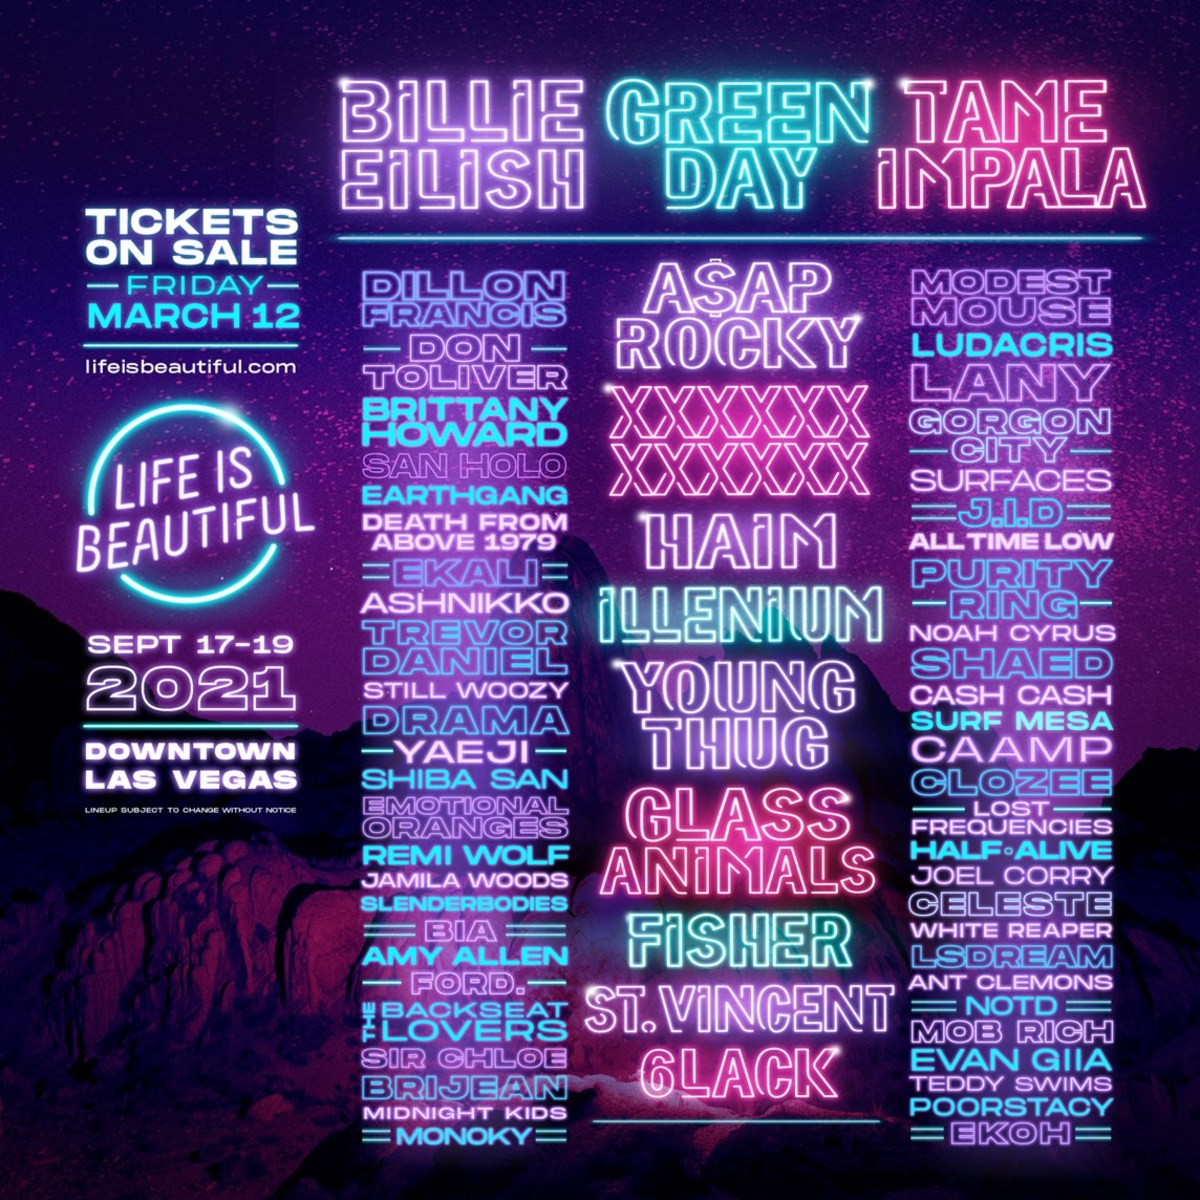 Billie Eilish, Green Day, and Tame Impala are set to headline the 2021 edition of Life Is Beatiful in Las Vegas.